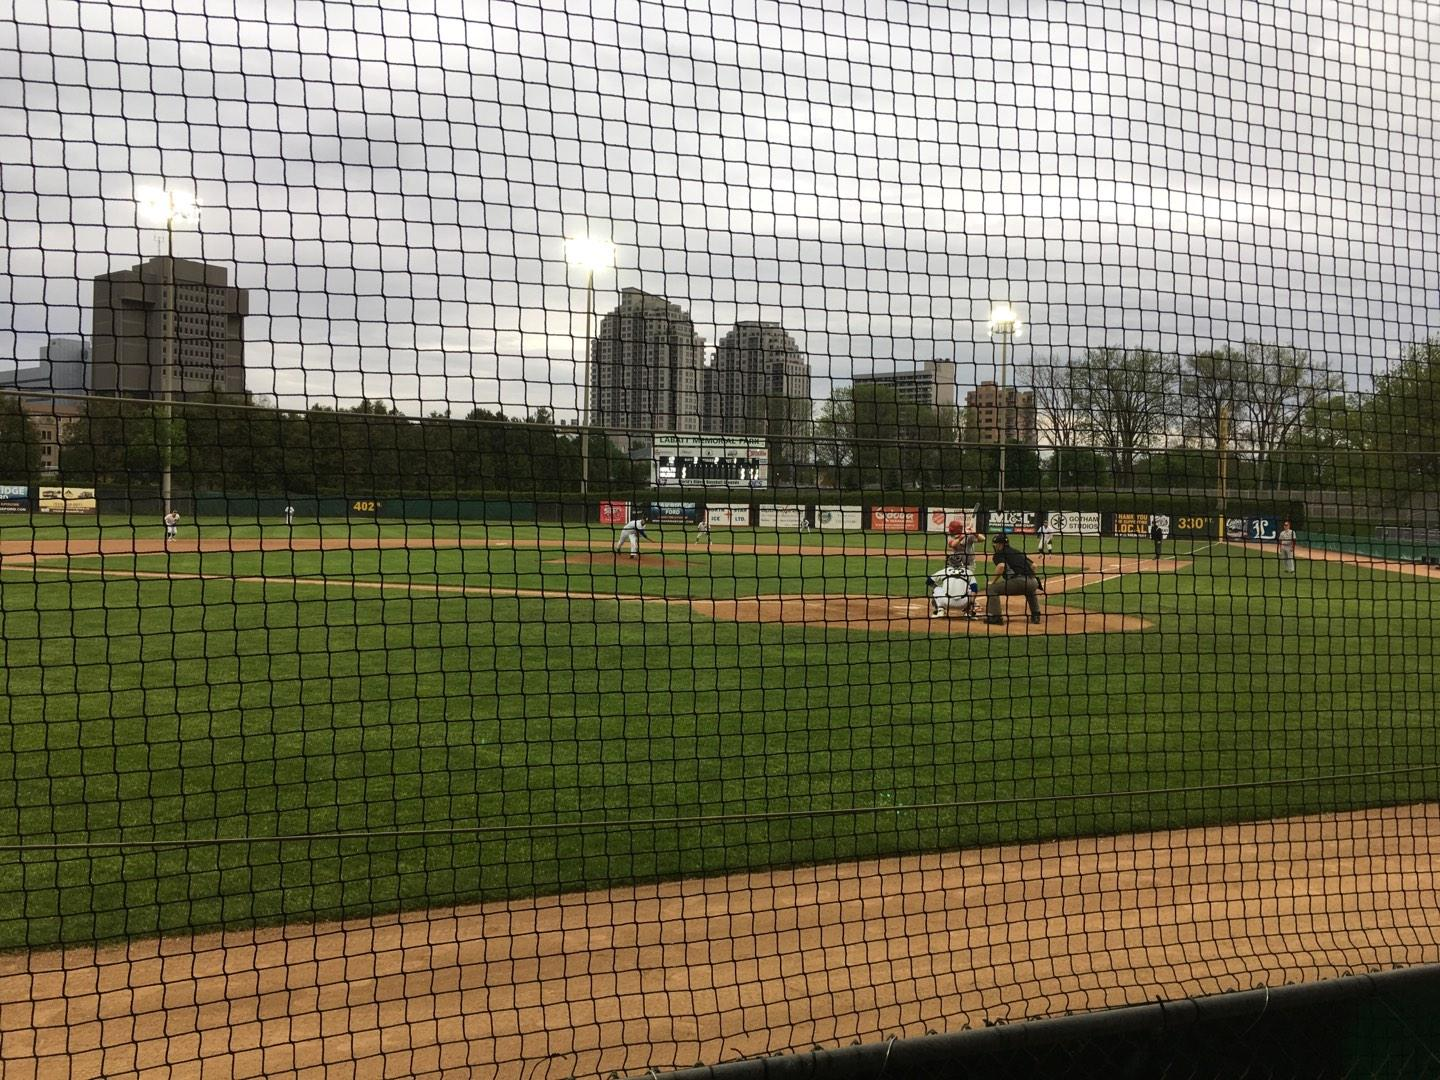 Labatt Park Section VIP Row 3 Seat 6